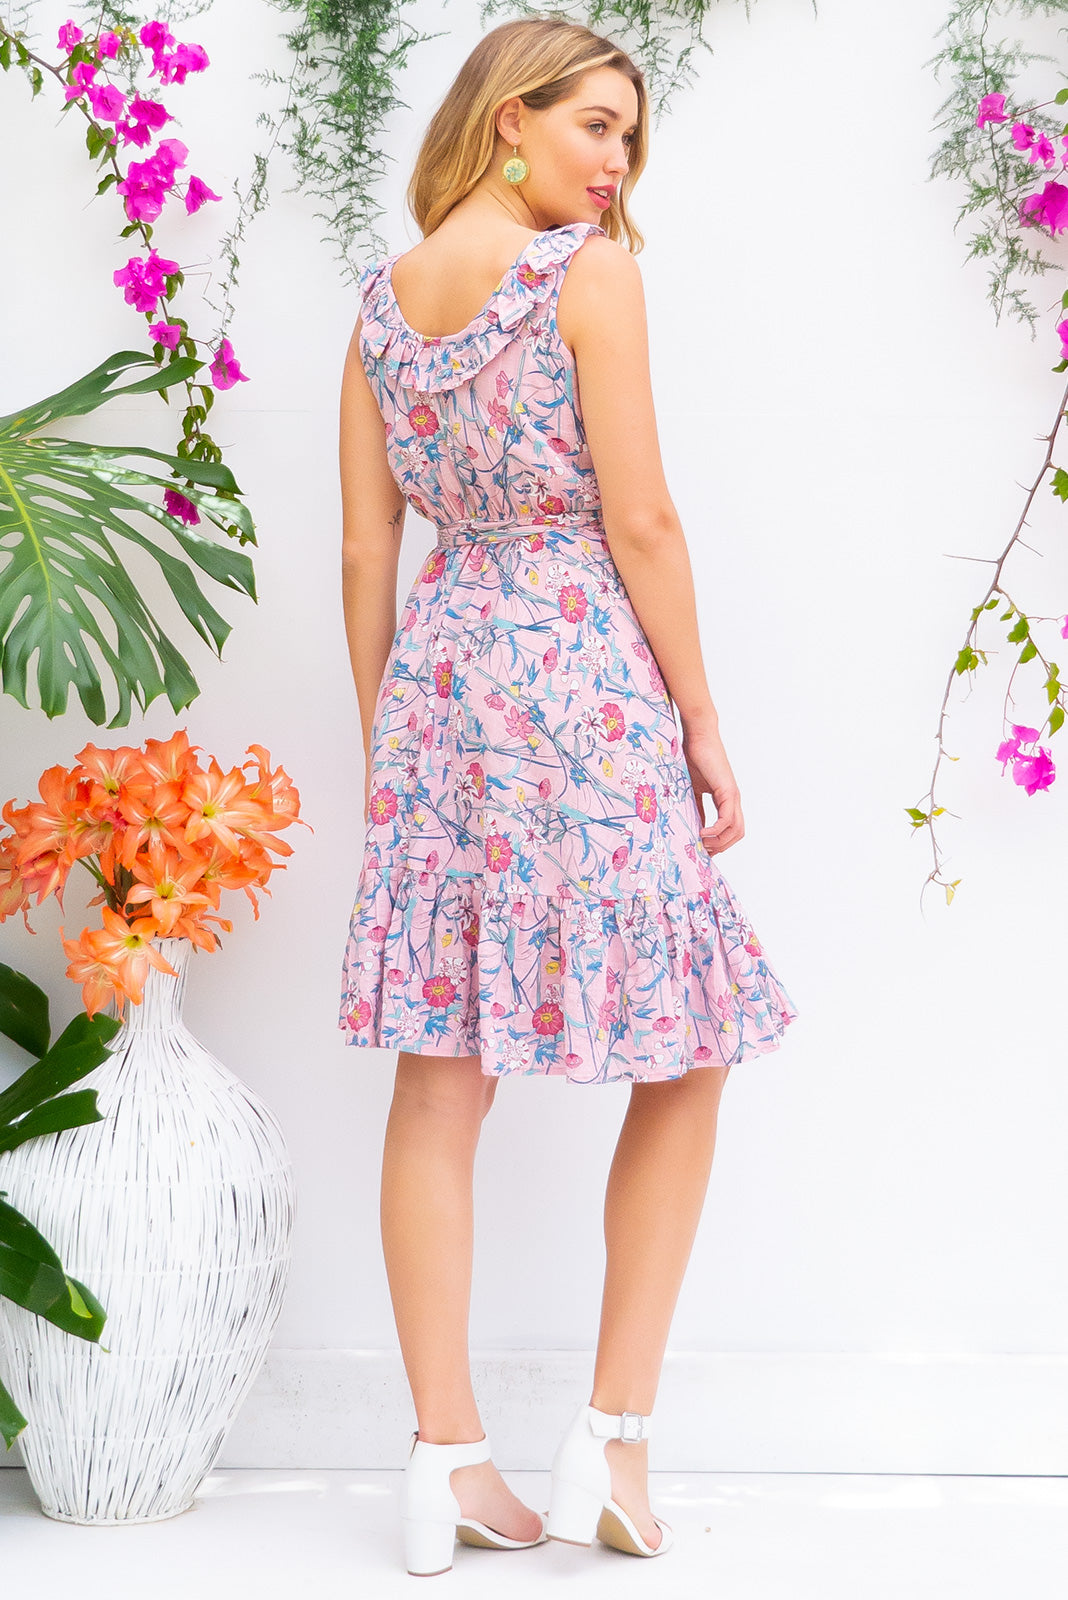 Paloma Pink Le Park Wrap Dress features a flattering wrap around shape, sleeveless bodice with a frill and comes in a cool toned petal pink floral print a cotton rayon blend